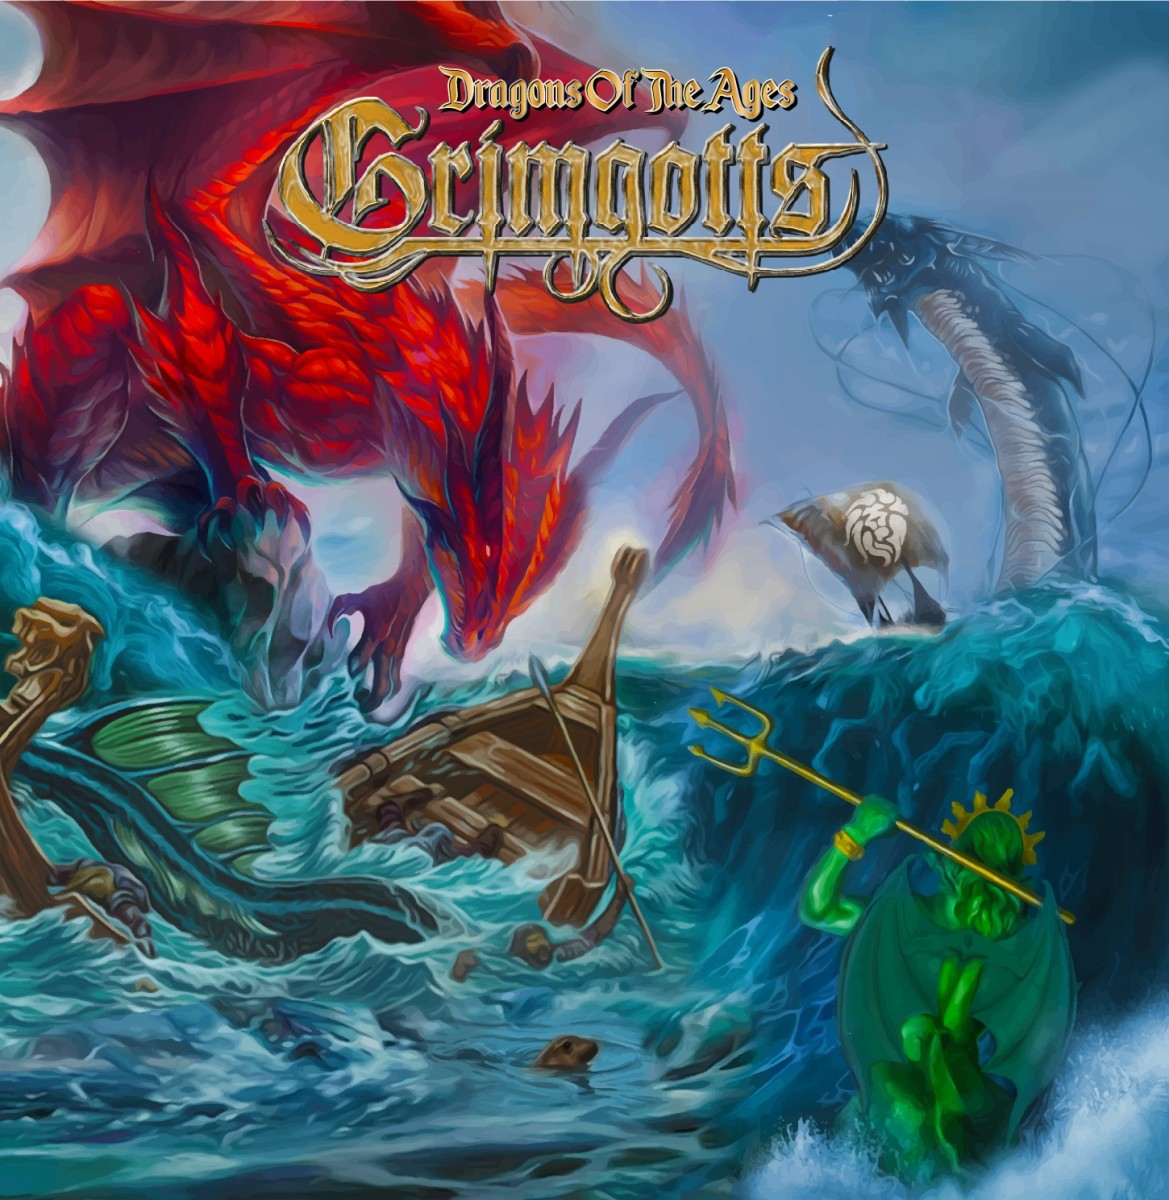 "Grimgotts, ""Dragons of the Ages"" Album Review"